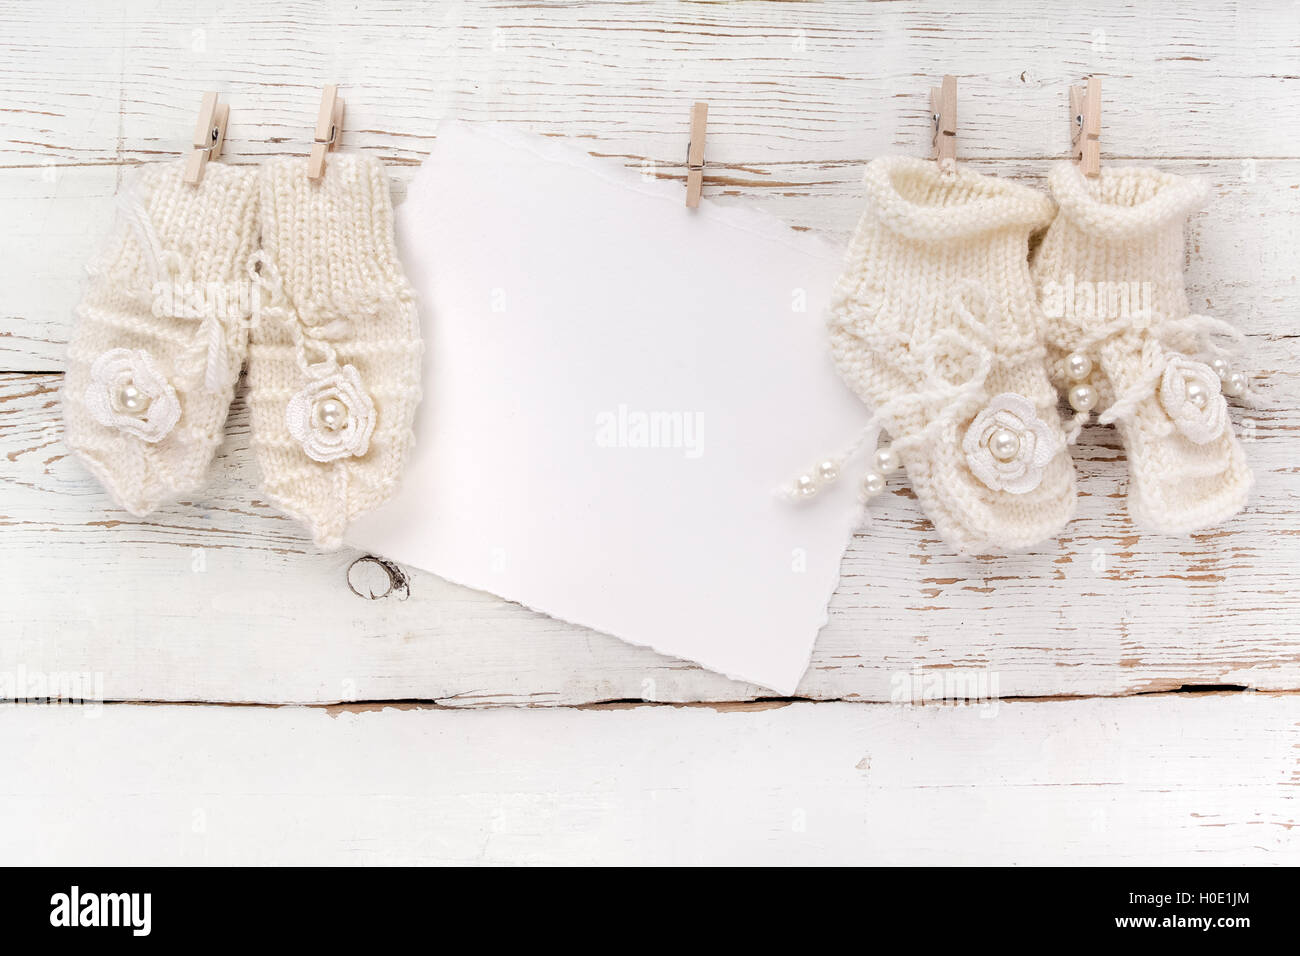 New born or baptism greeting card blank with baby girl shoes and new born or baptism greeting card blank with baby girl shoes and gloves on white wooden background kristyandbryce Images